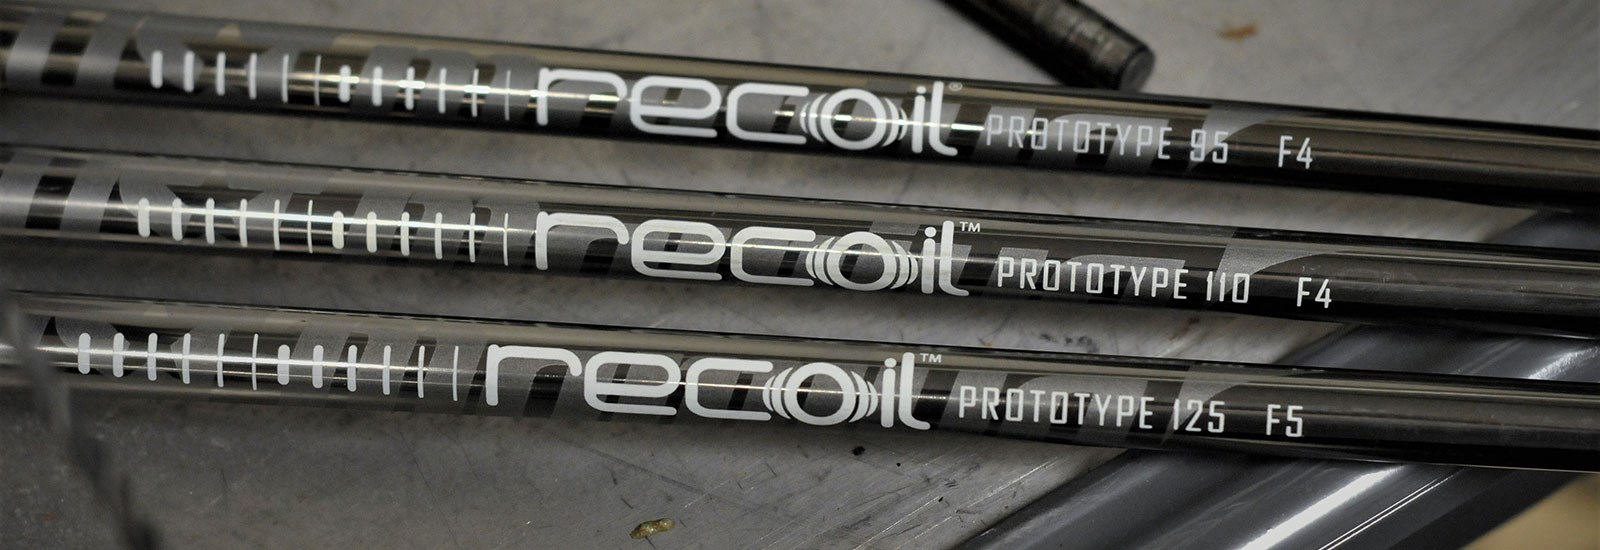 Recoil 95 Prototype Iron